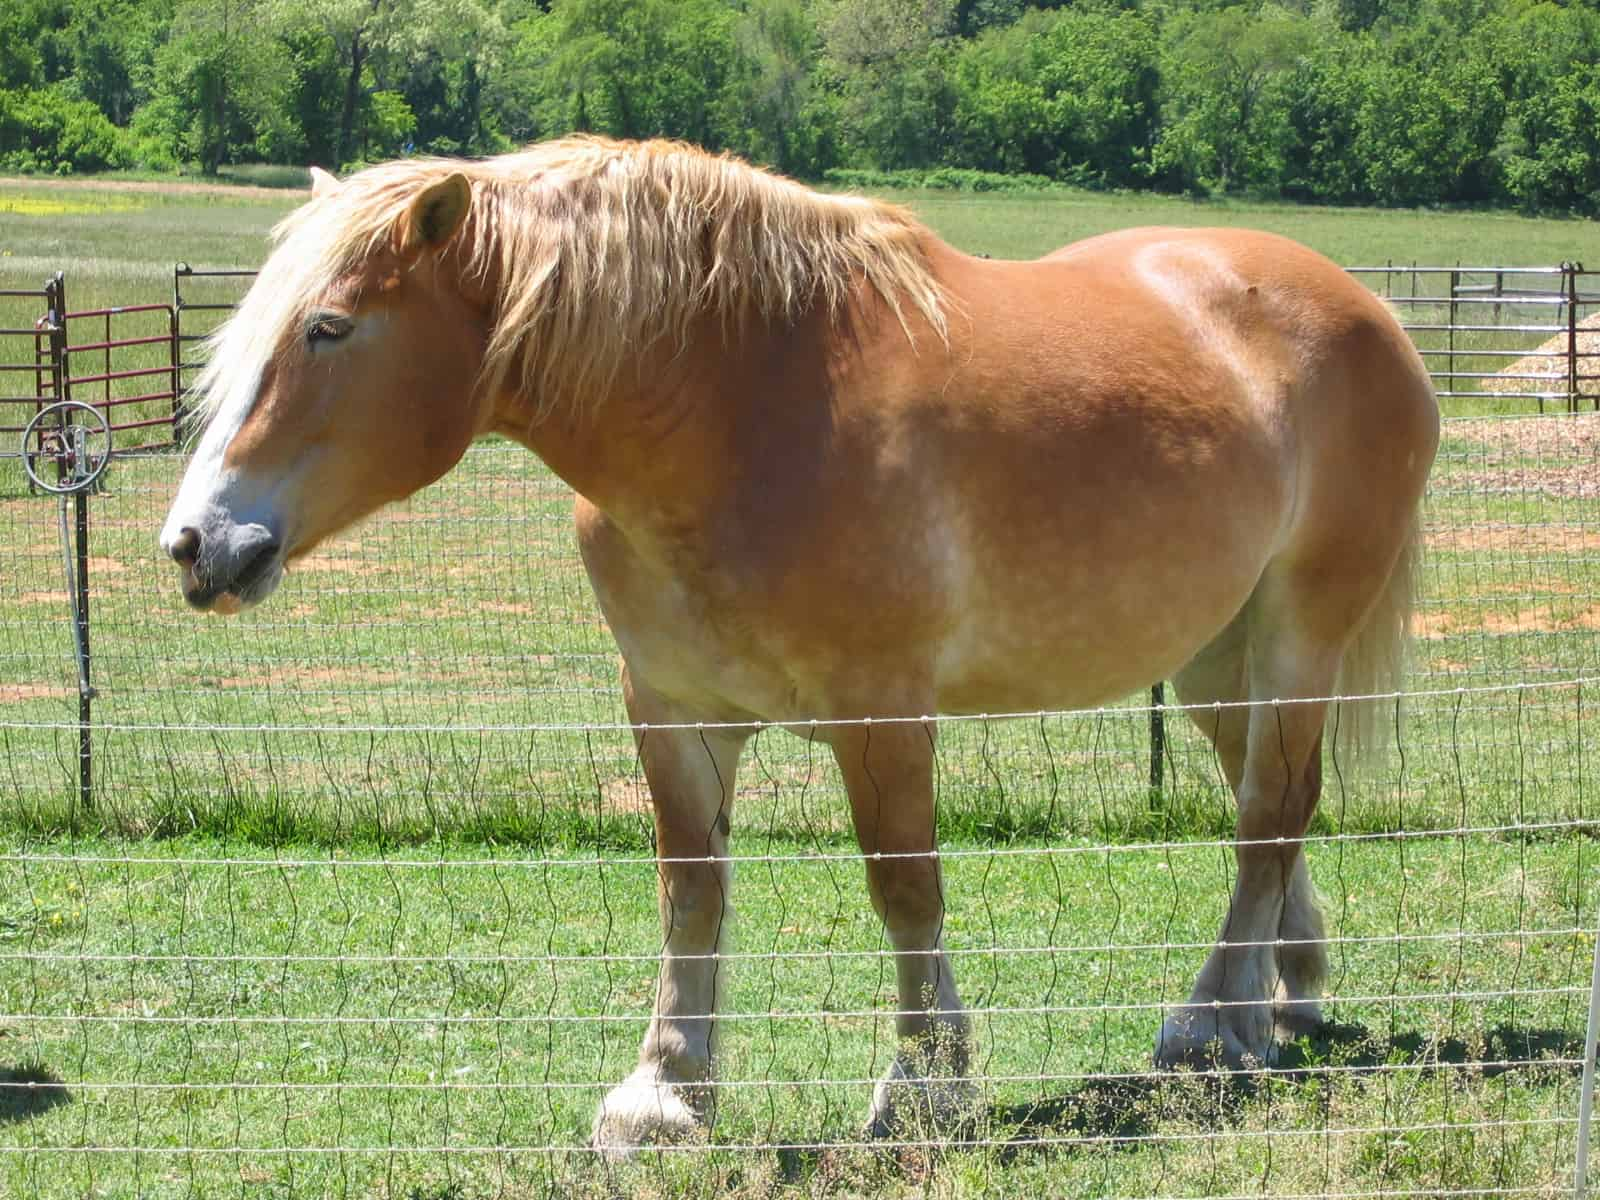 Belgian Draft Horse in pasture